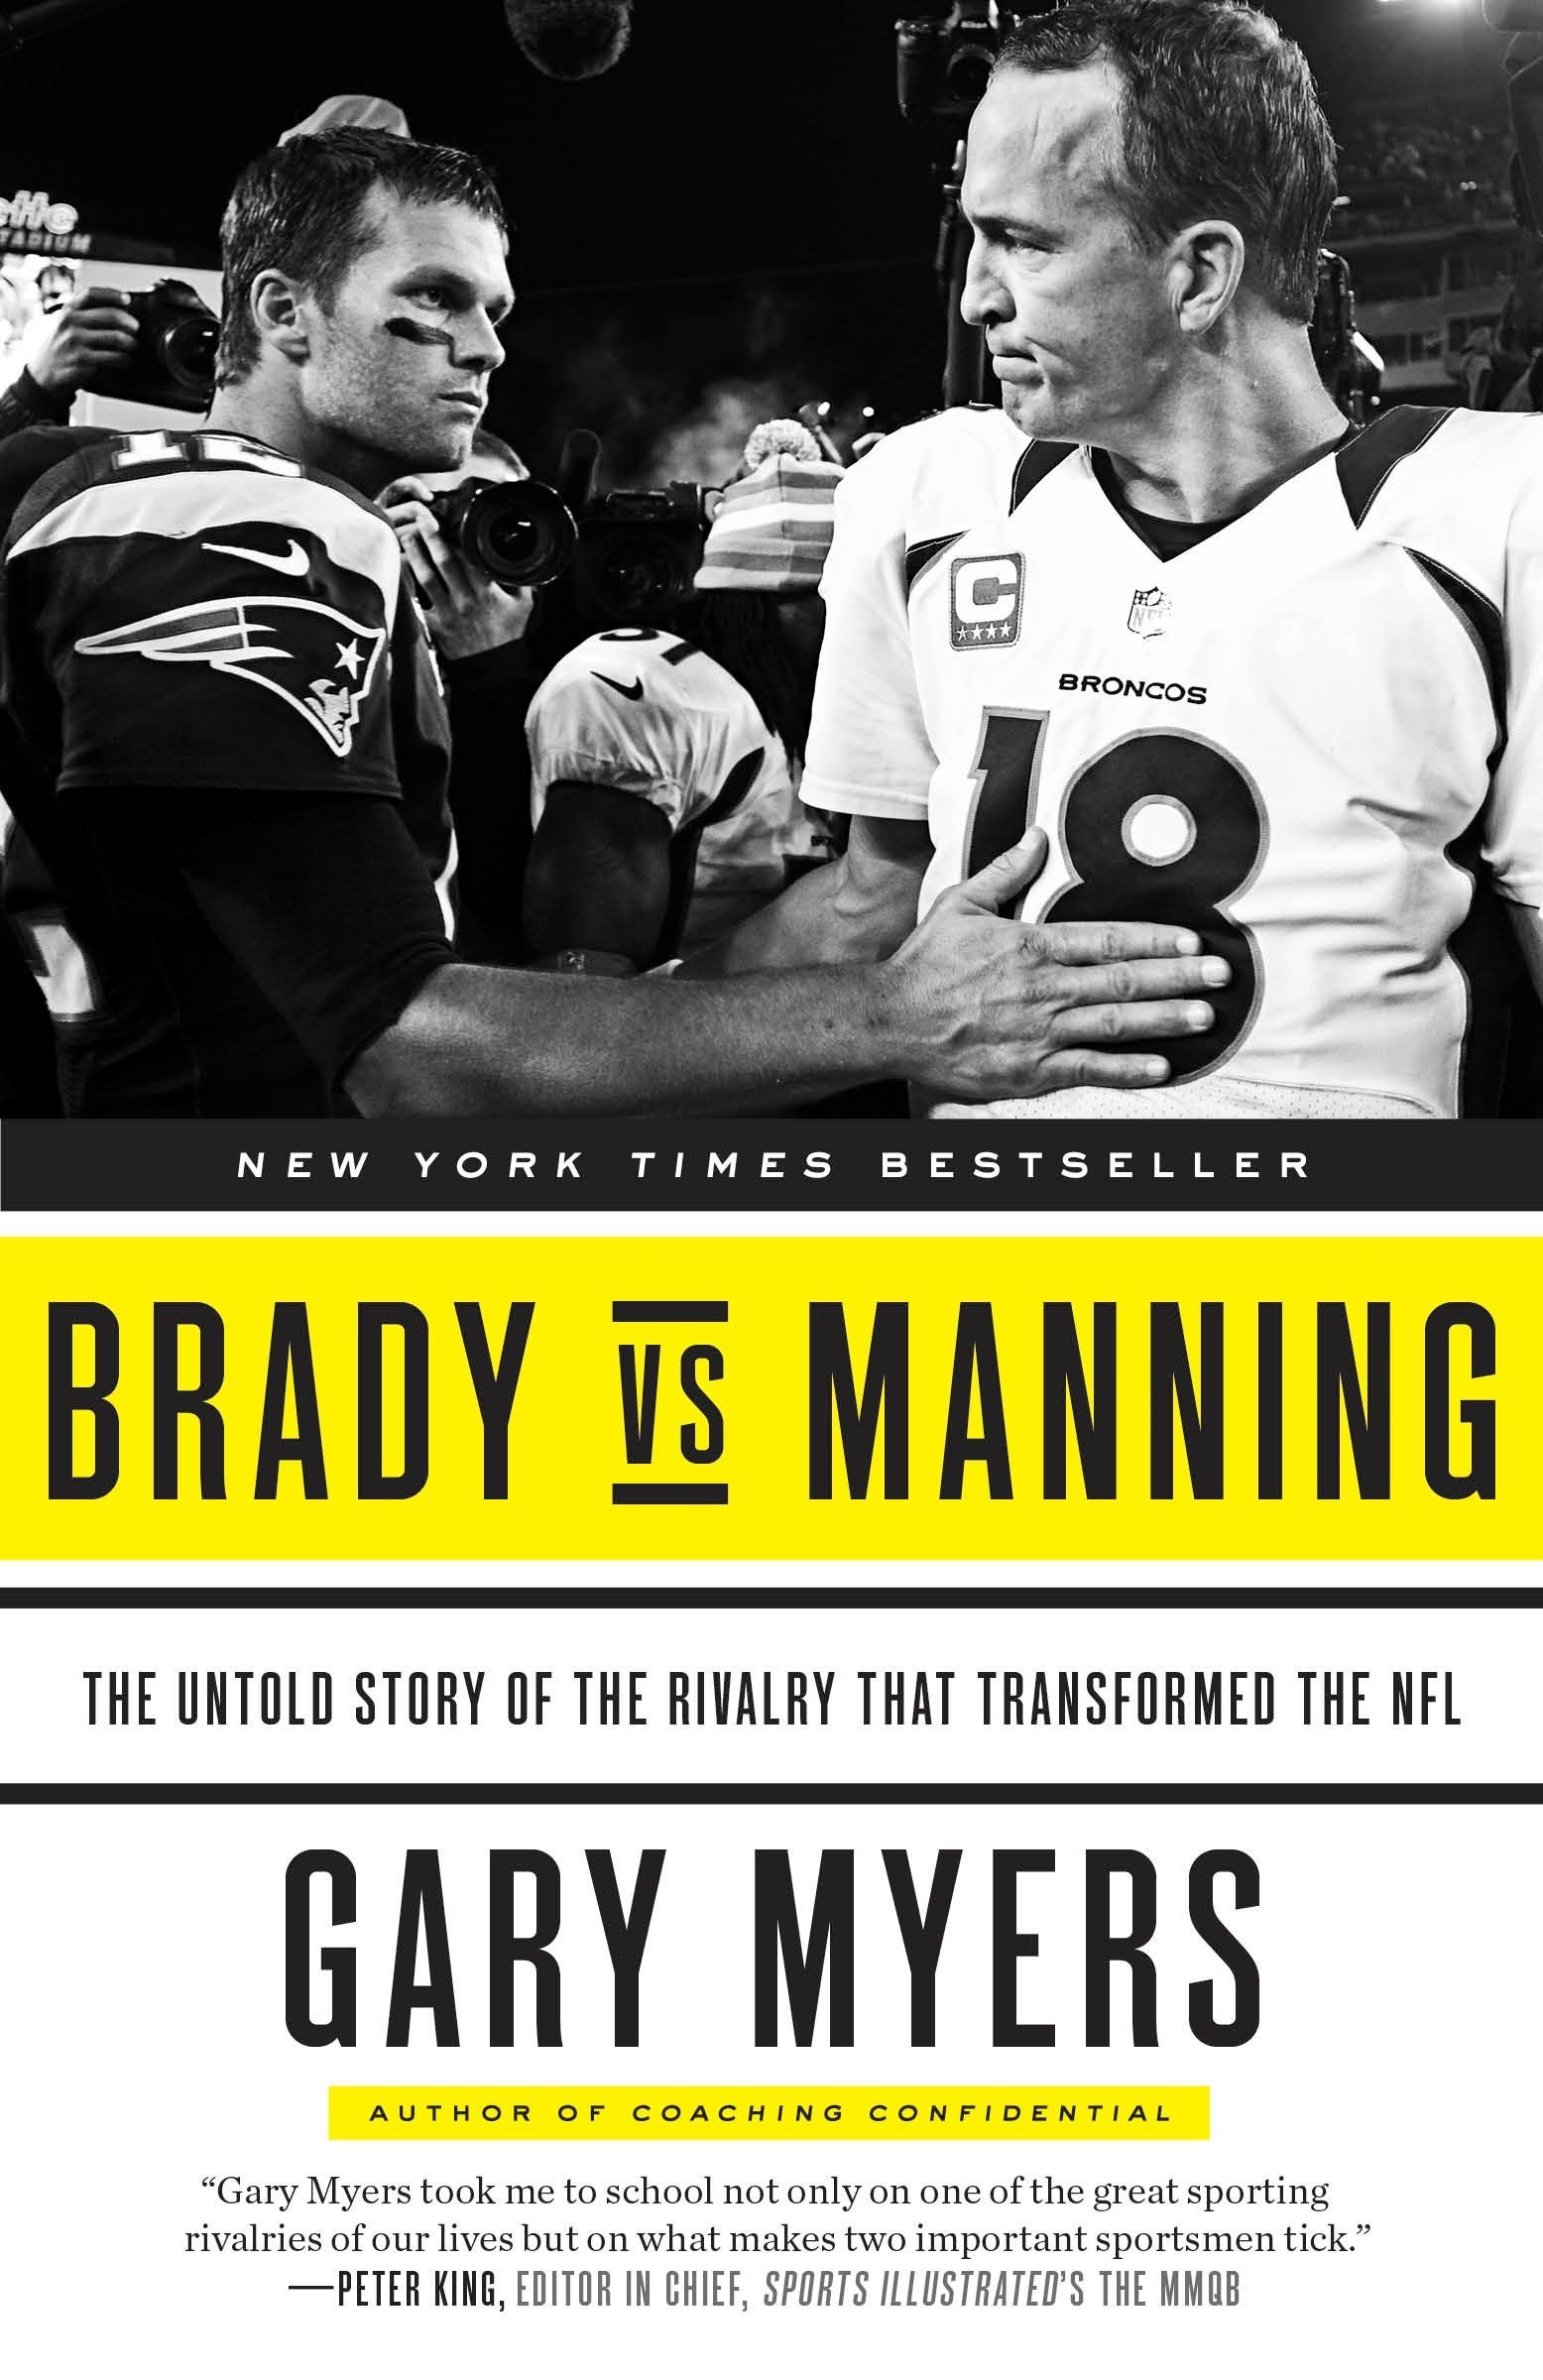 Miraculous Amazon Com Brady Vs Manning The Untold Story Of The Interior Design Ideas Clesiryabchikinfo